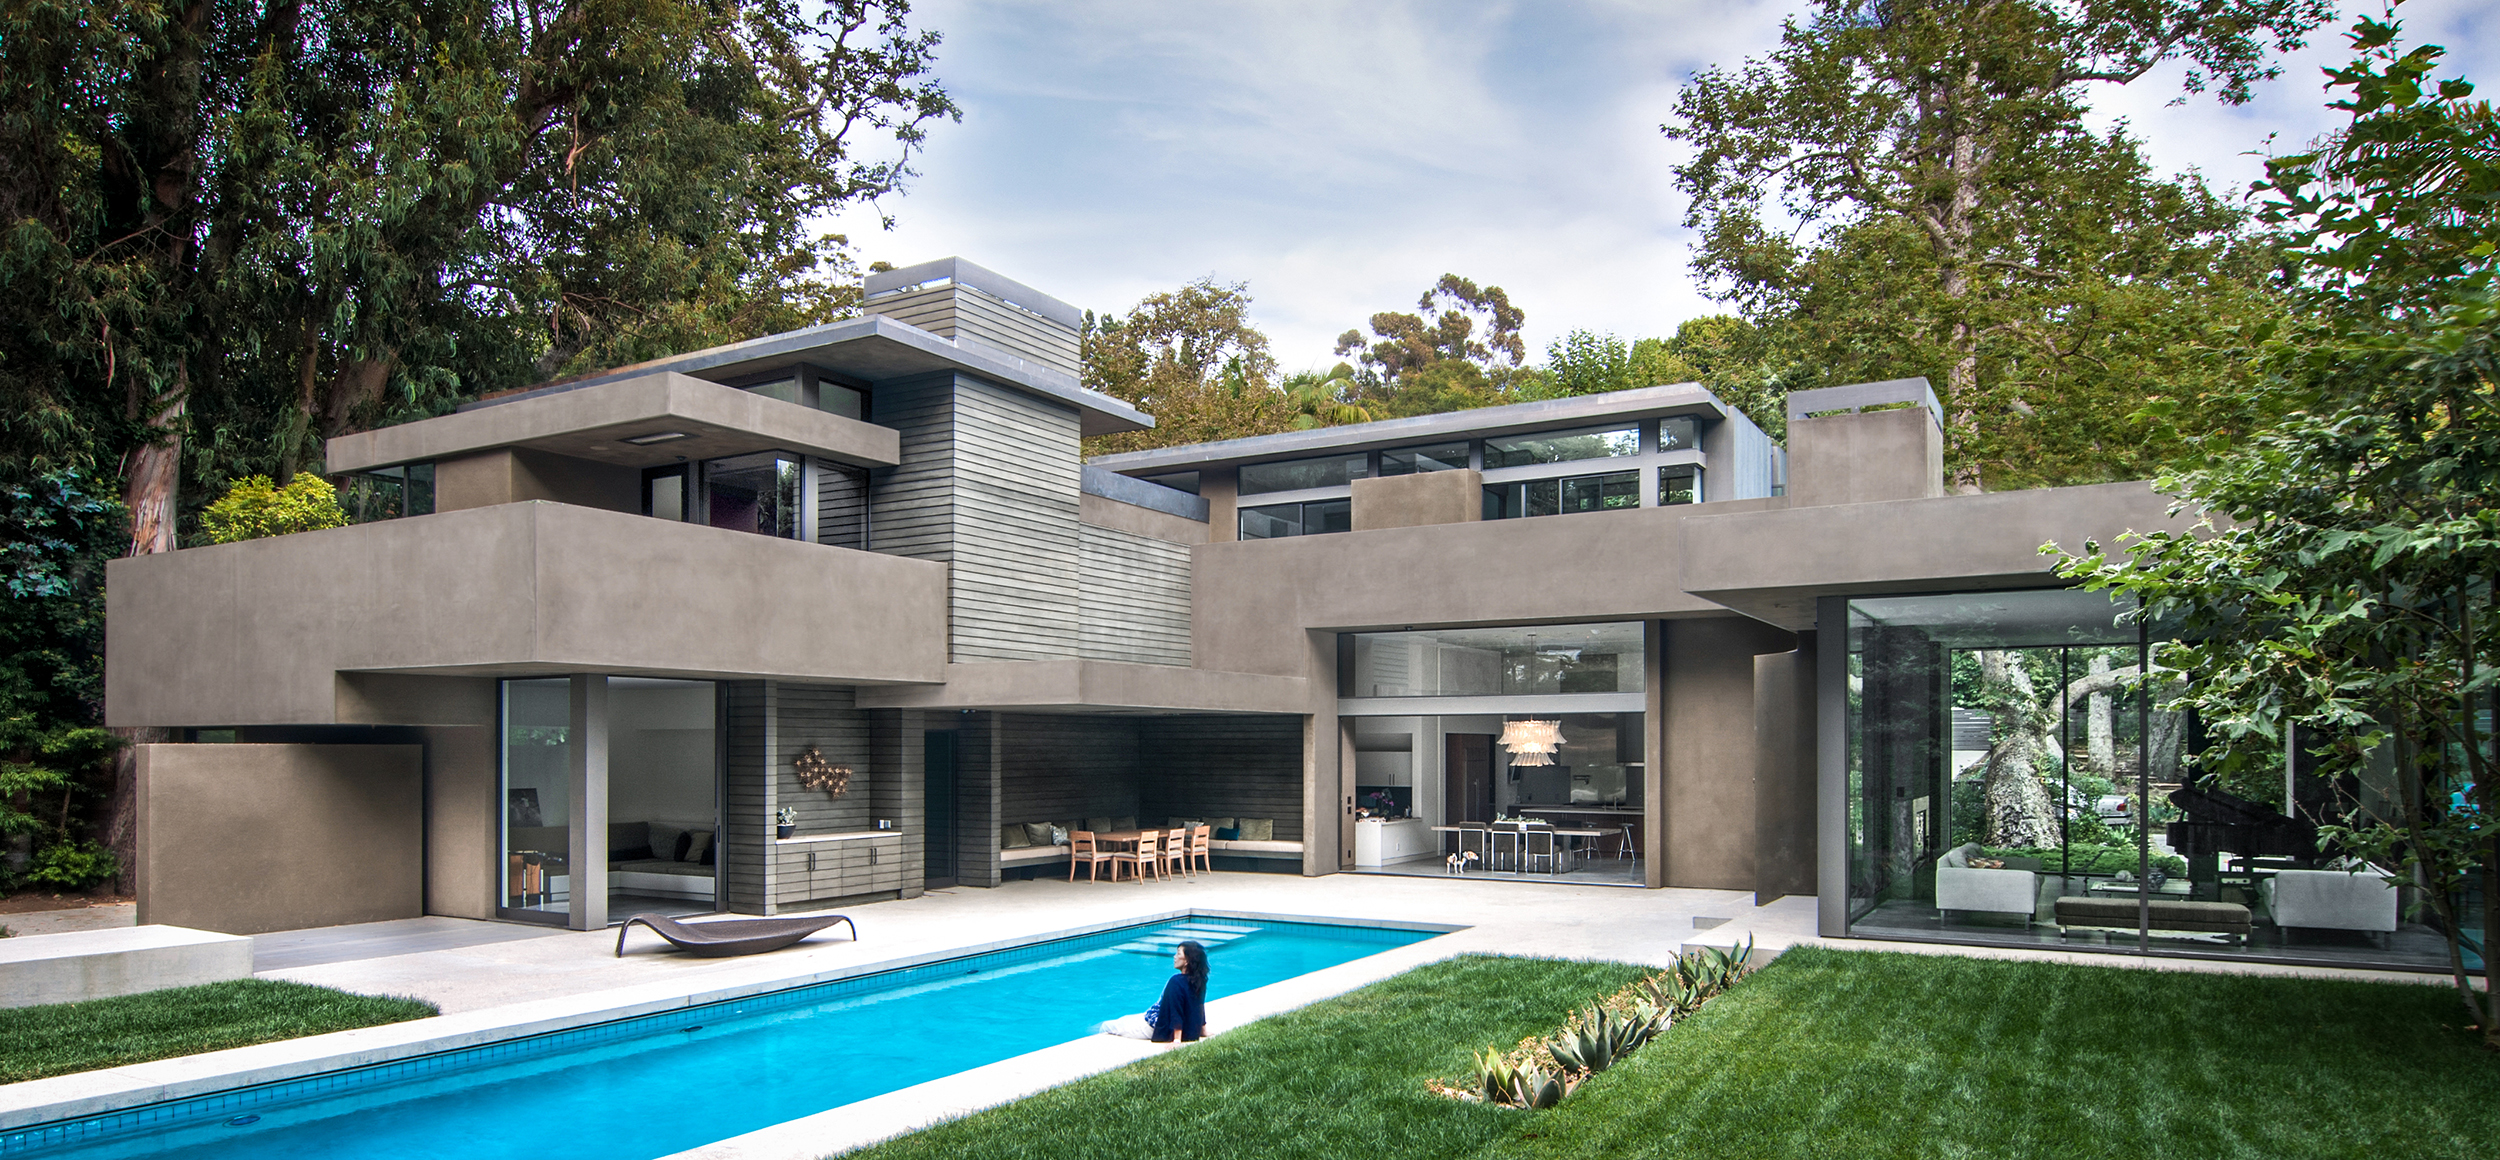 Annie Chu presents the Rustic Canyon House for AIA Los Angeles